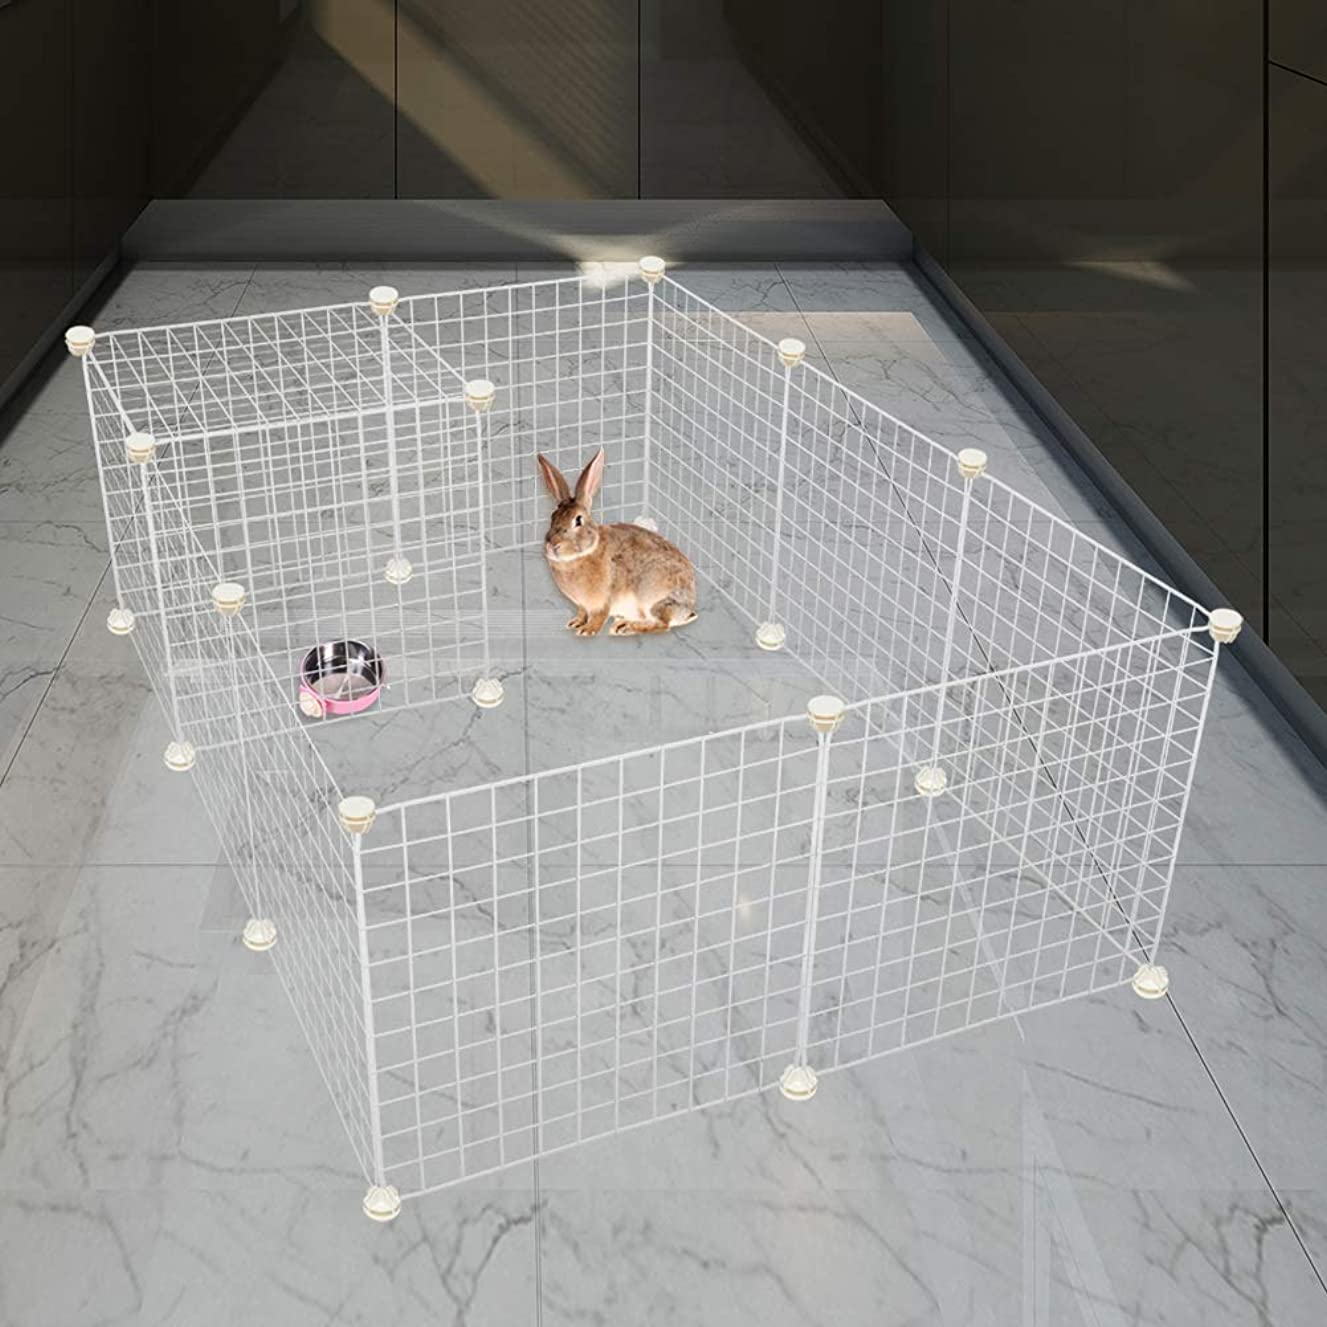 EXPAWLORER Puppy Playpen Indoor for Small Animals - 12 Panel Playpen Portable Metal Wire Yard Fence for Puppy, Cat, Guinea Pigs, Rabbits